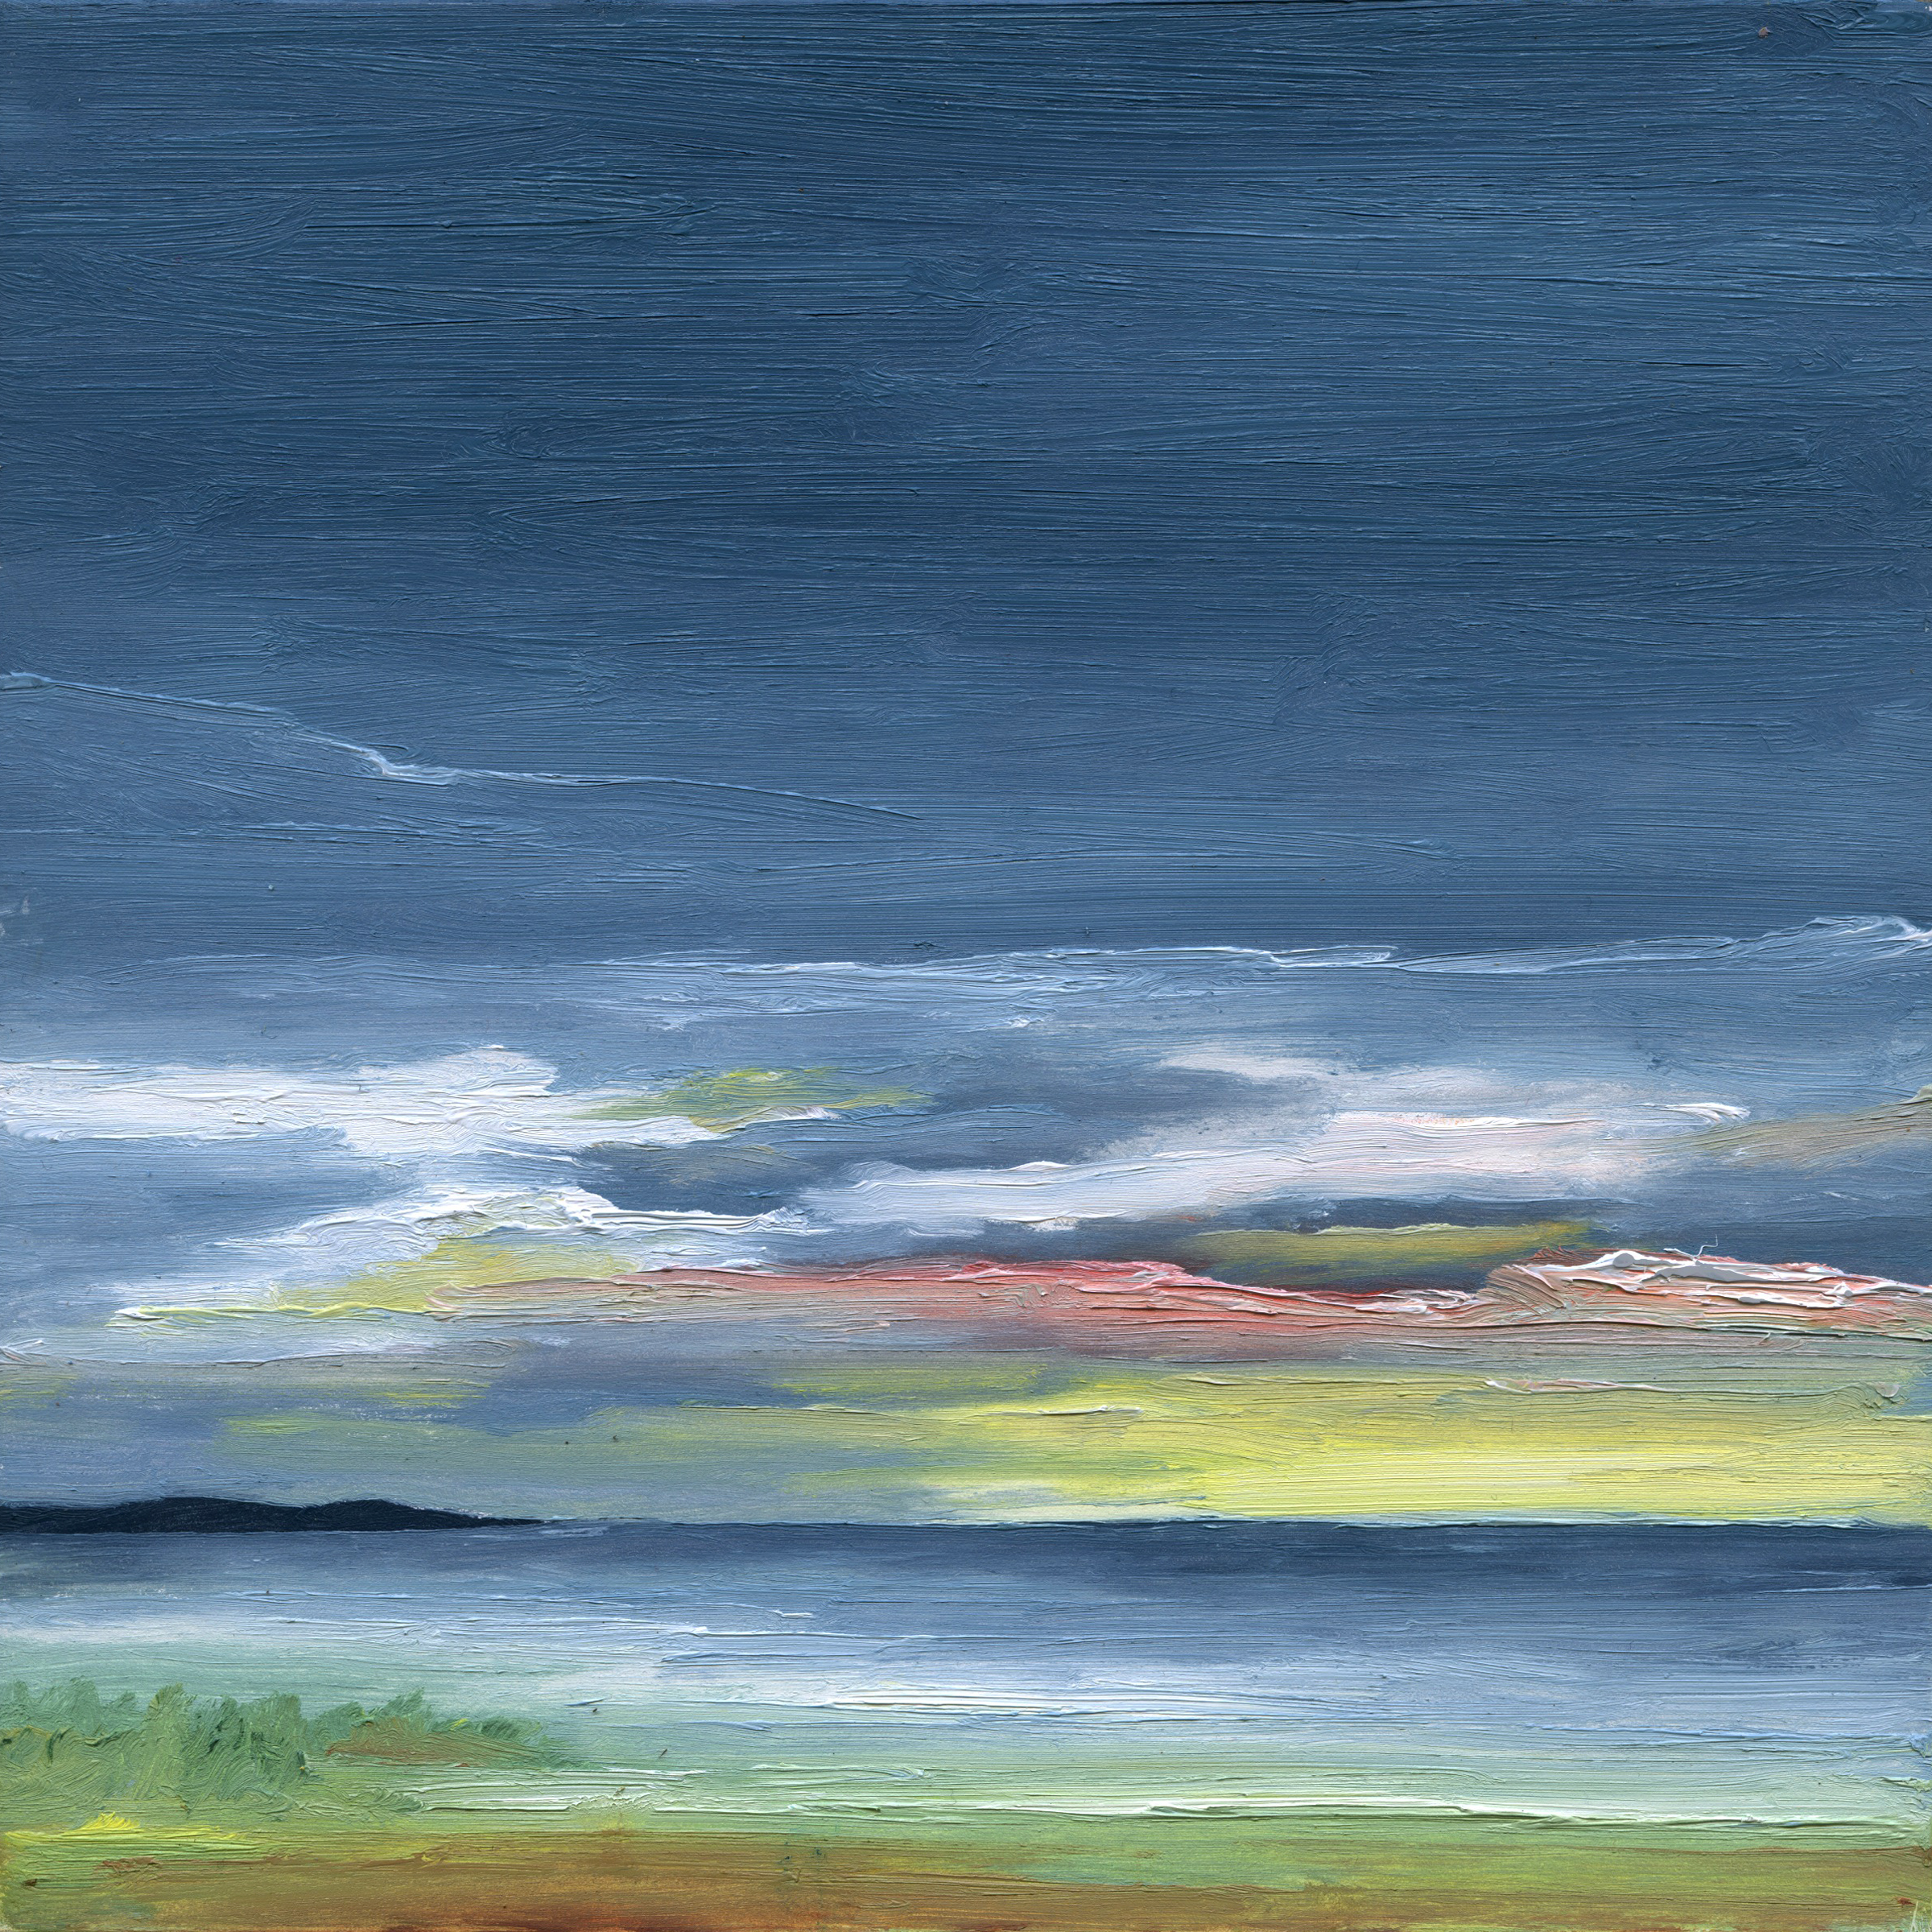 At The Horizon - Jack's View Cape Cod, oil on board, 8 by 8 inches, 2015, $1000